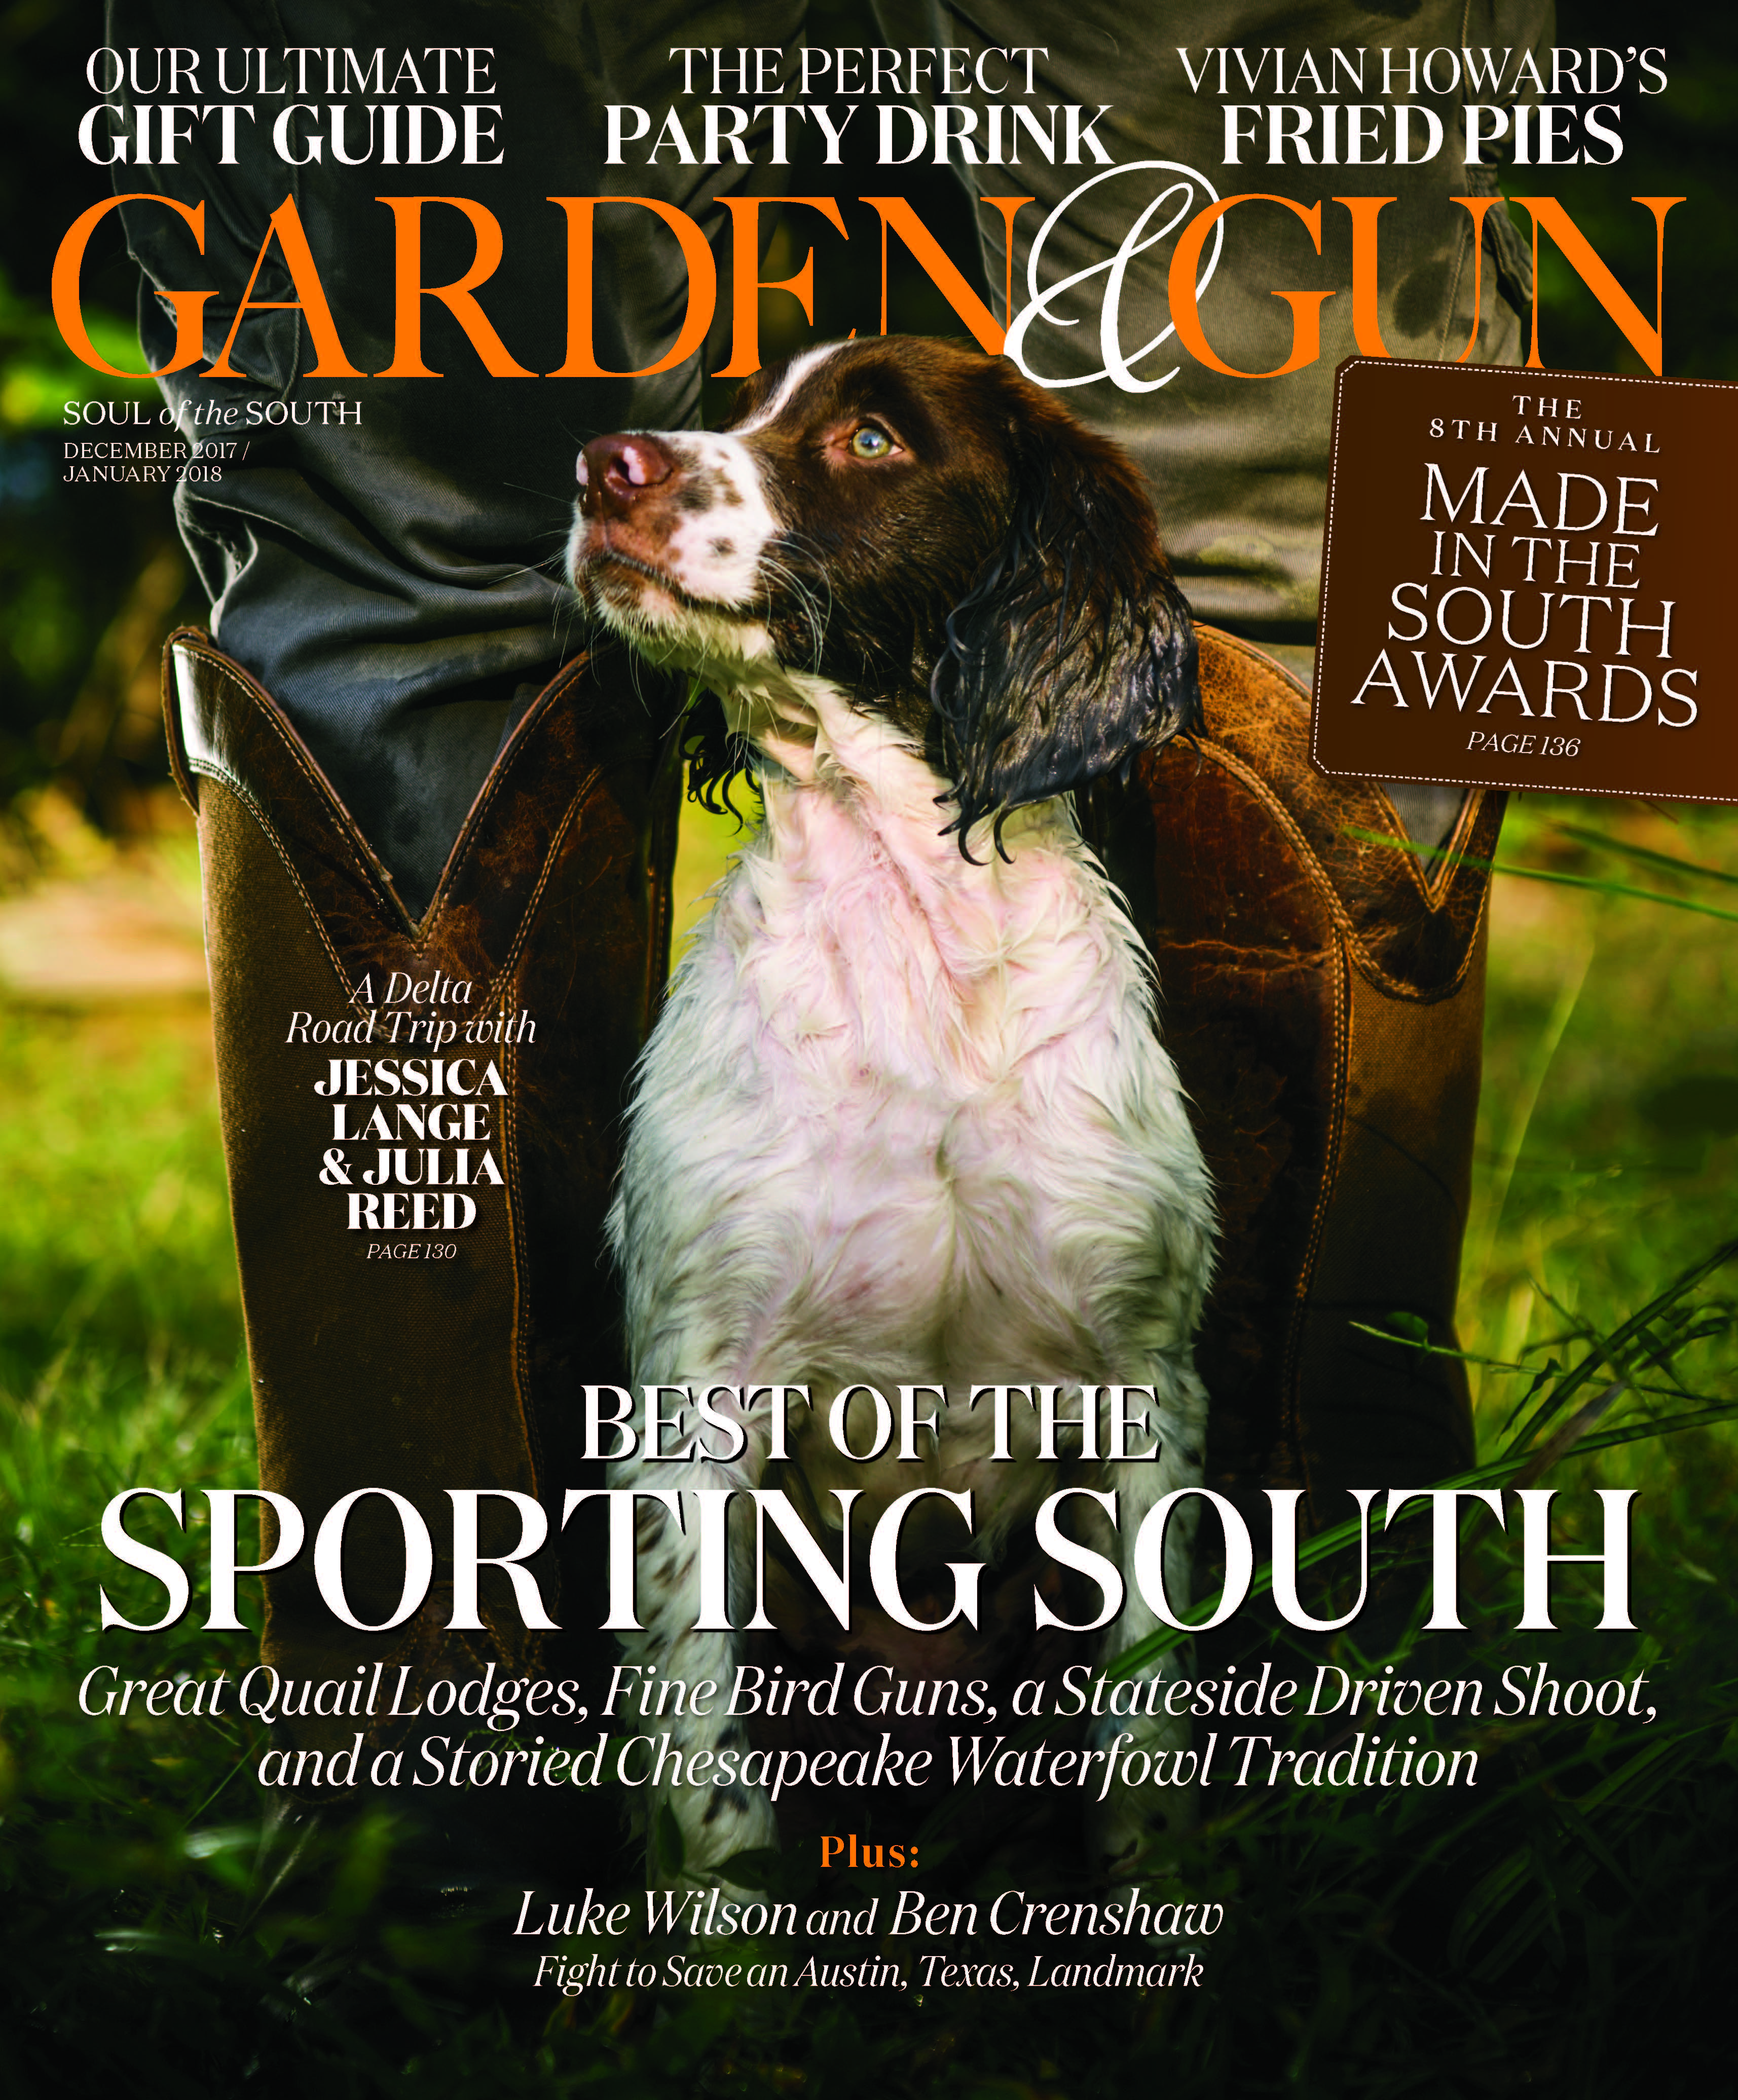 garden gun magazines three secrets of success continued commitment to content excellence refreshing new design always putting the reader first the - Garden And Gun Magazine